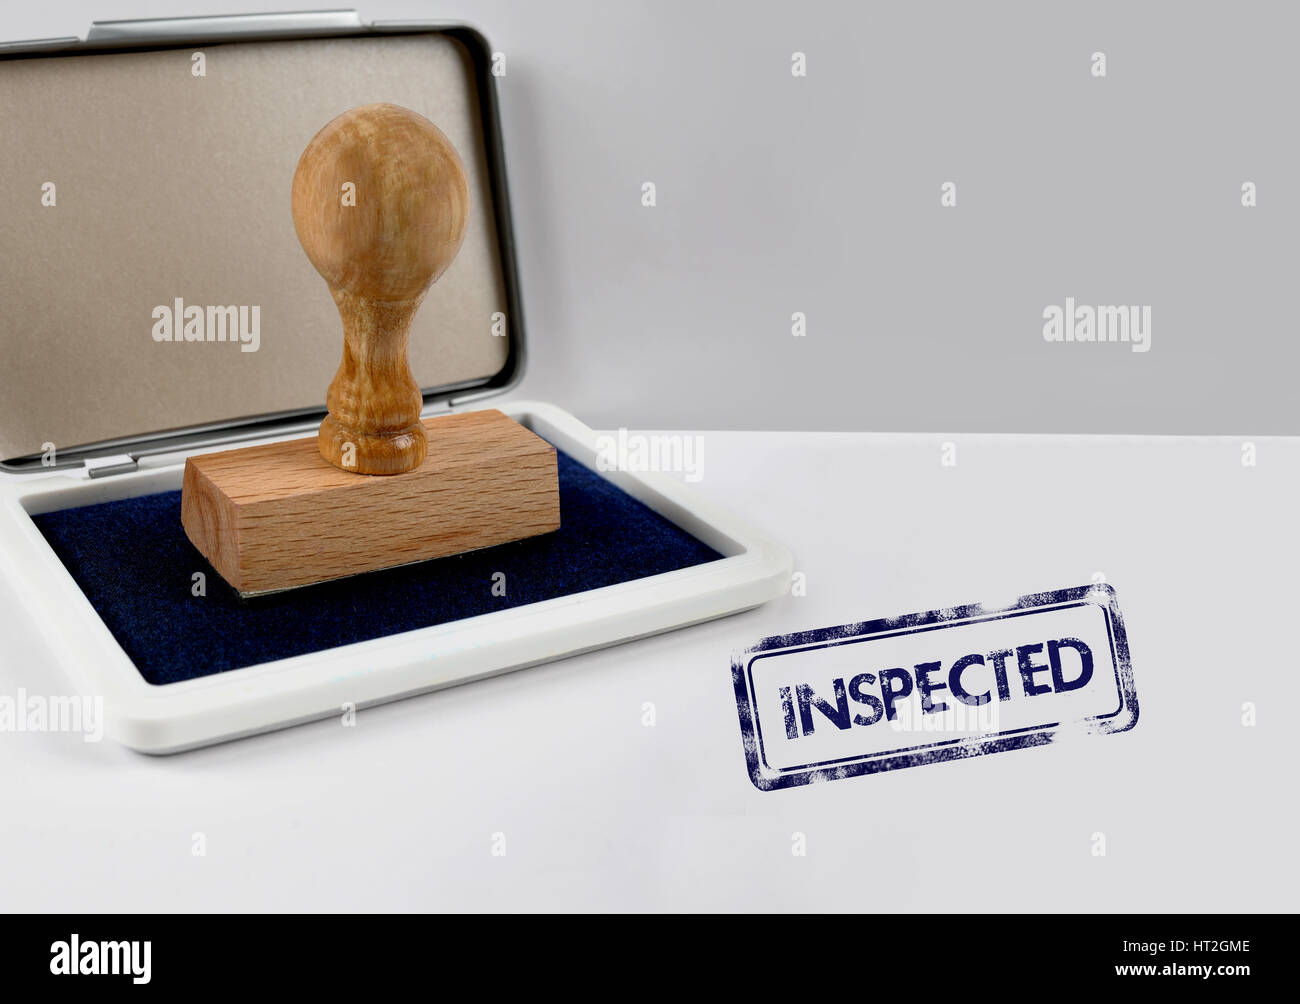 Wooden stamp on a desk INSPECTED - Stock Image